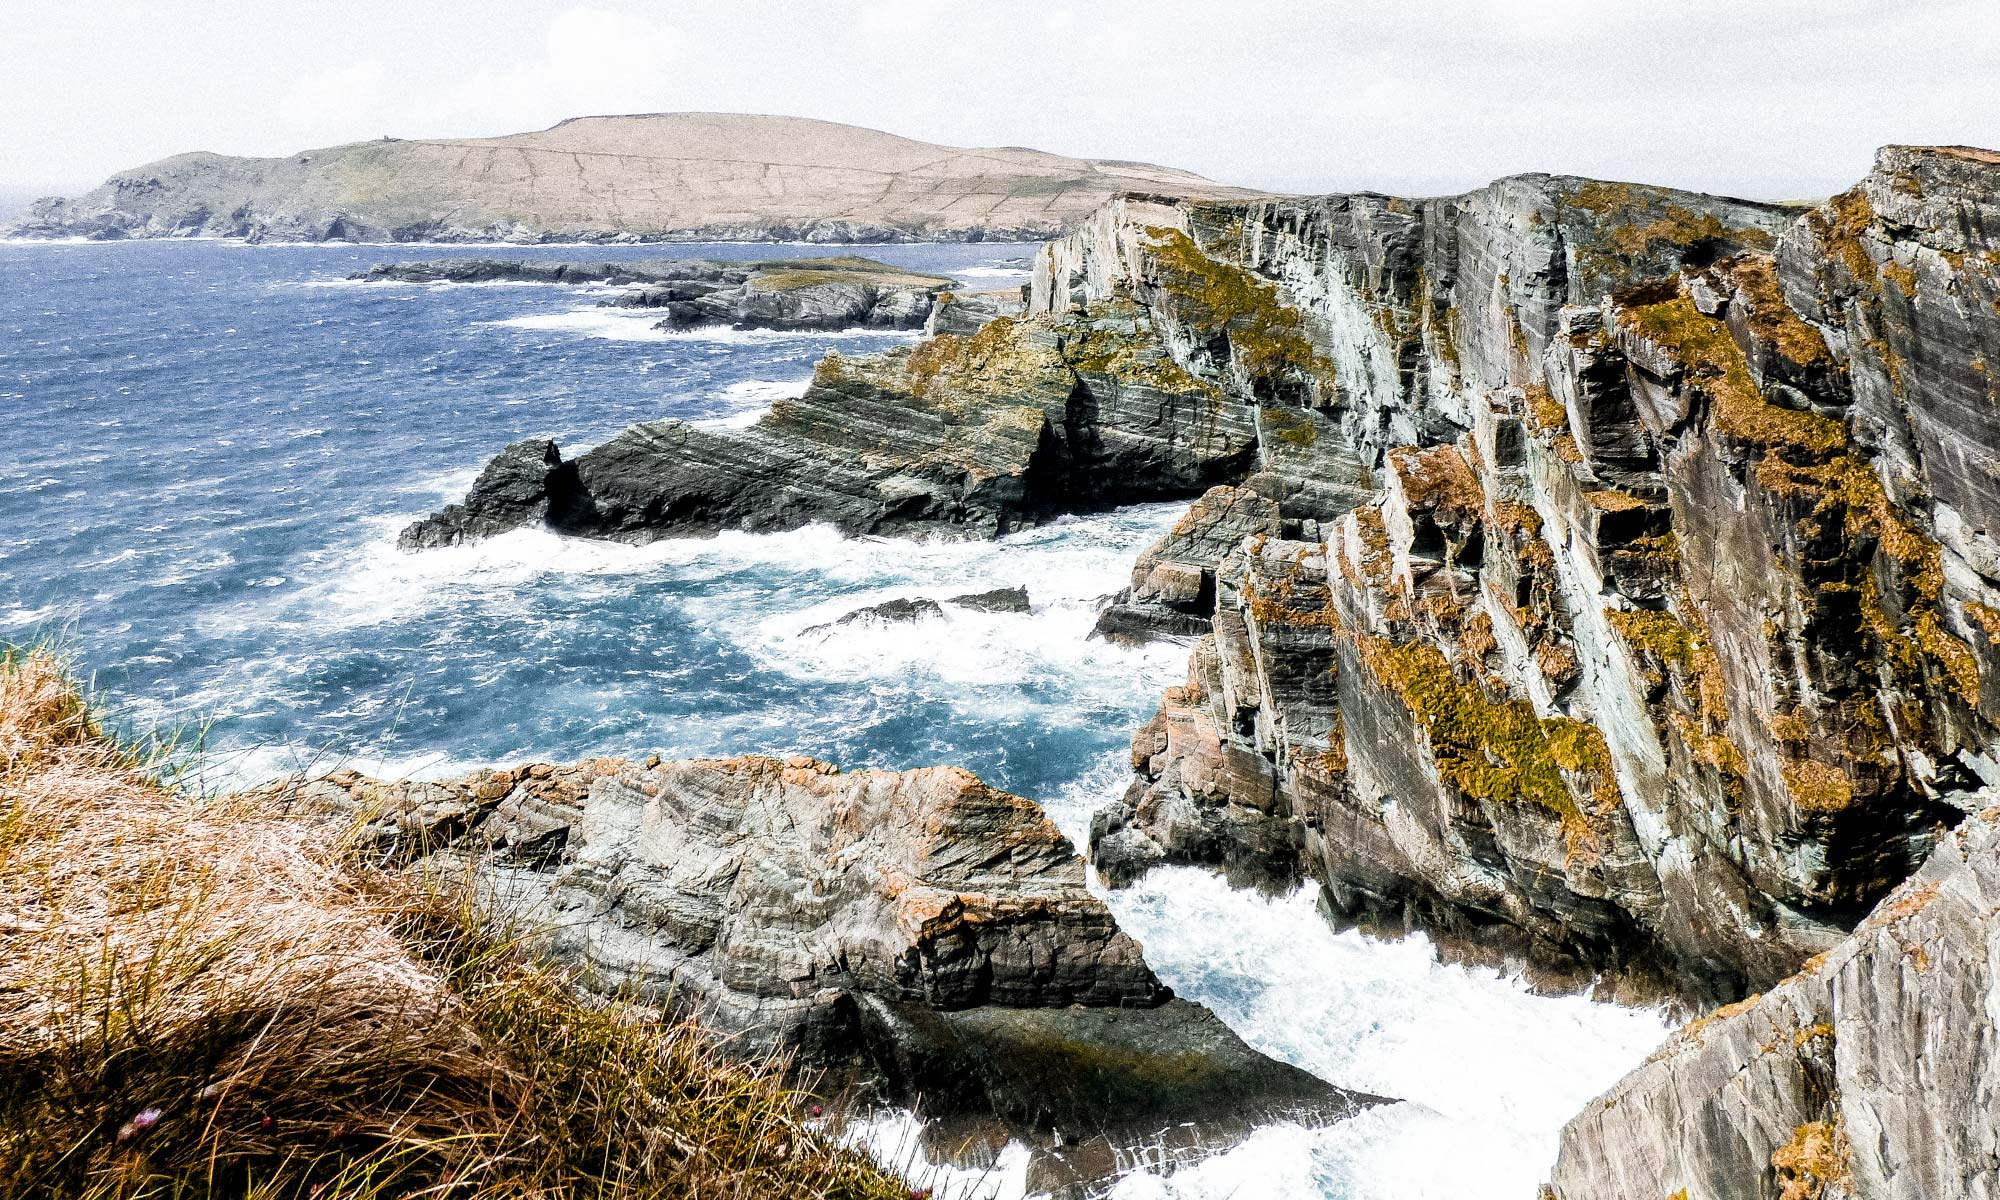 Kerry's Most Spectacular Cliffs: on of the 6 fun things to do on the Ring of Kerry